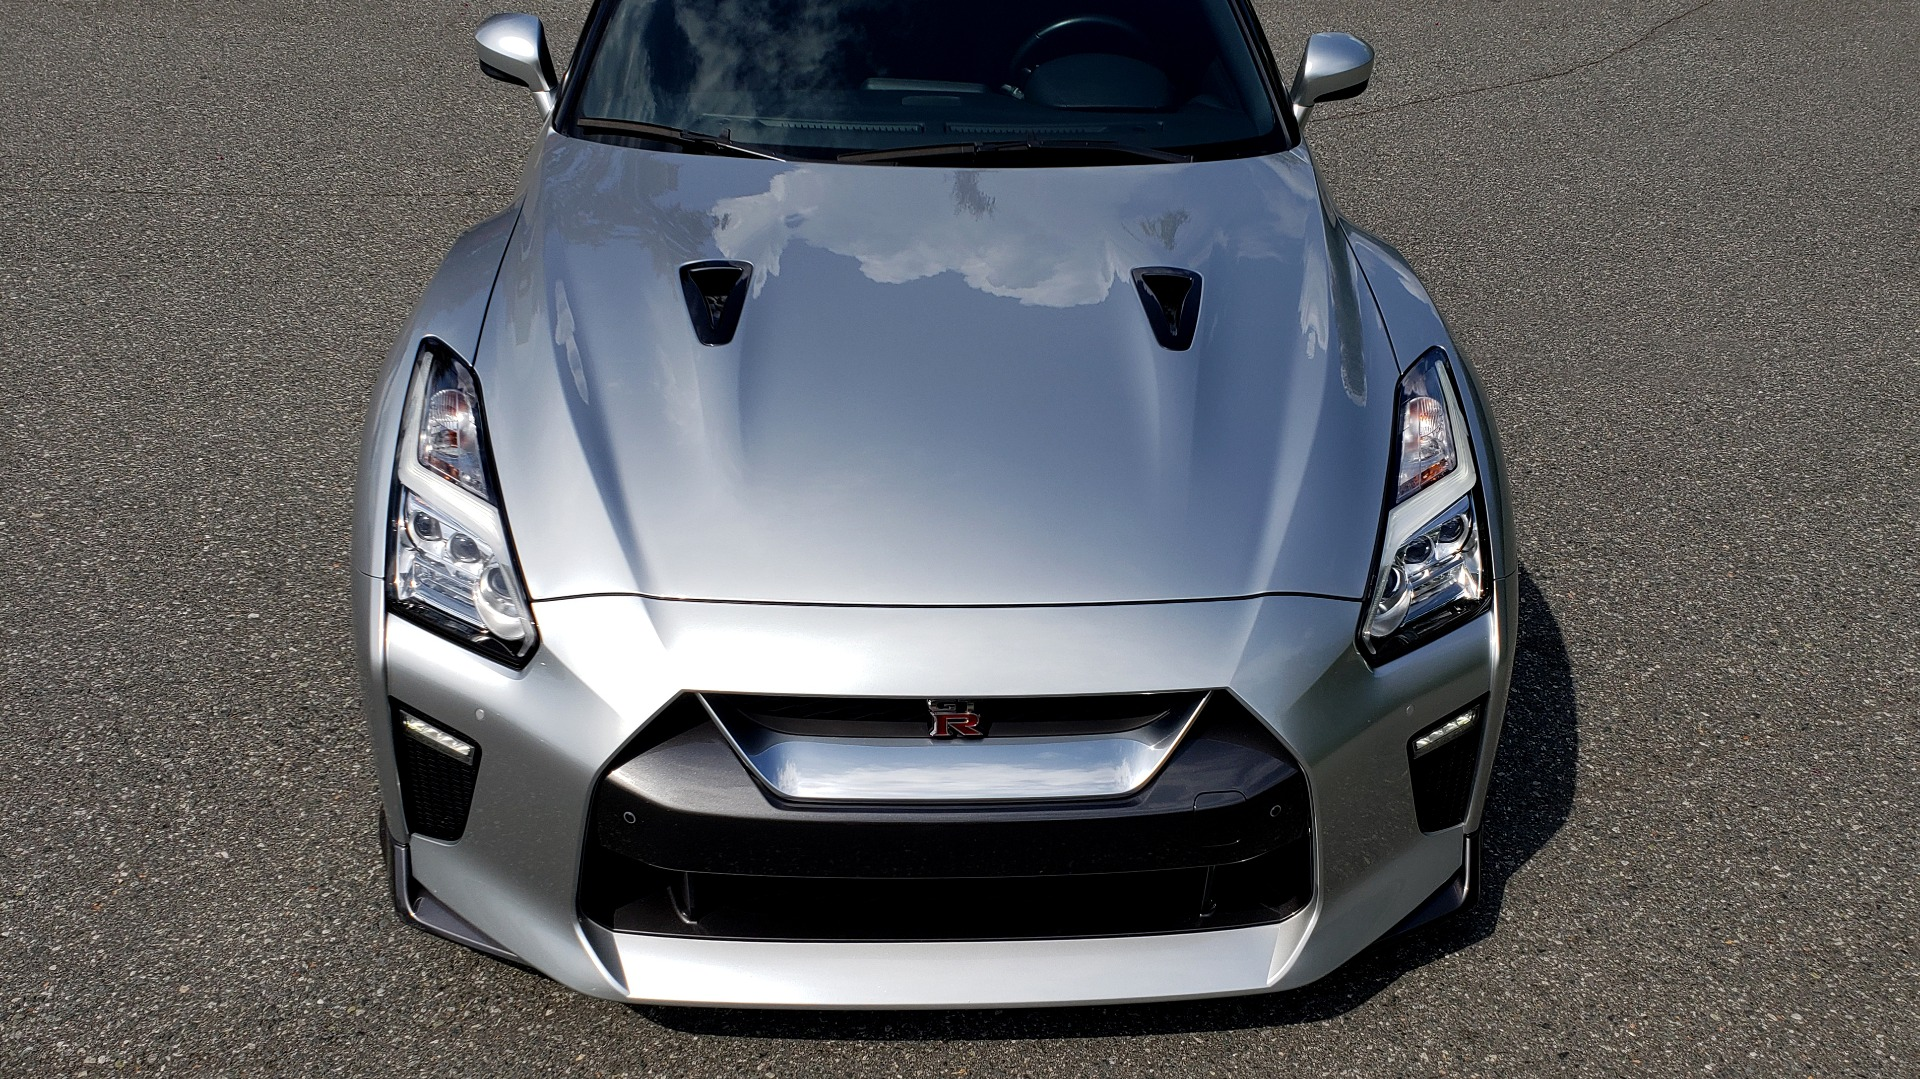 Used 2018 Nissan GT-R PREMIUM / NAV / BOSE / REARVIEW / CUSTOM WHEELS / COIL OVER SHOCKS / TUNED for sale Sold at Formula Imports in Charlotte NC 28227 20